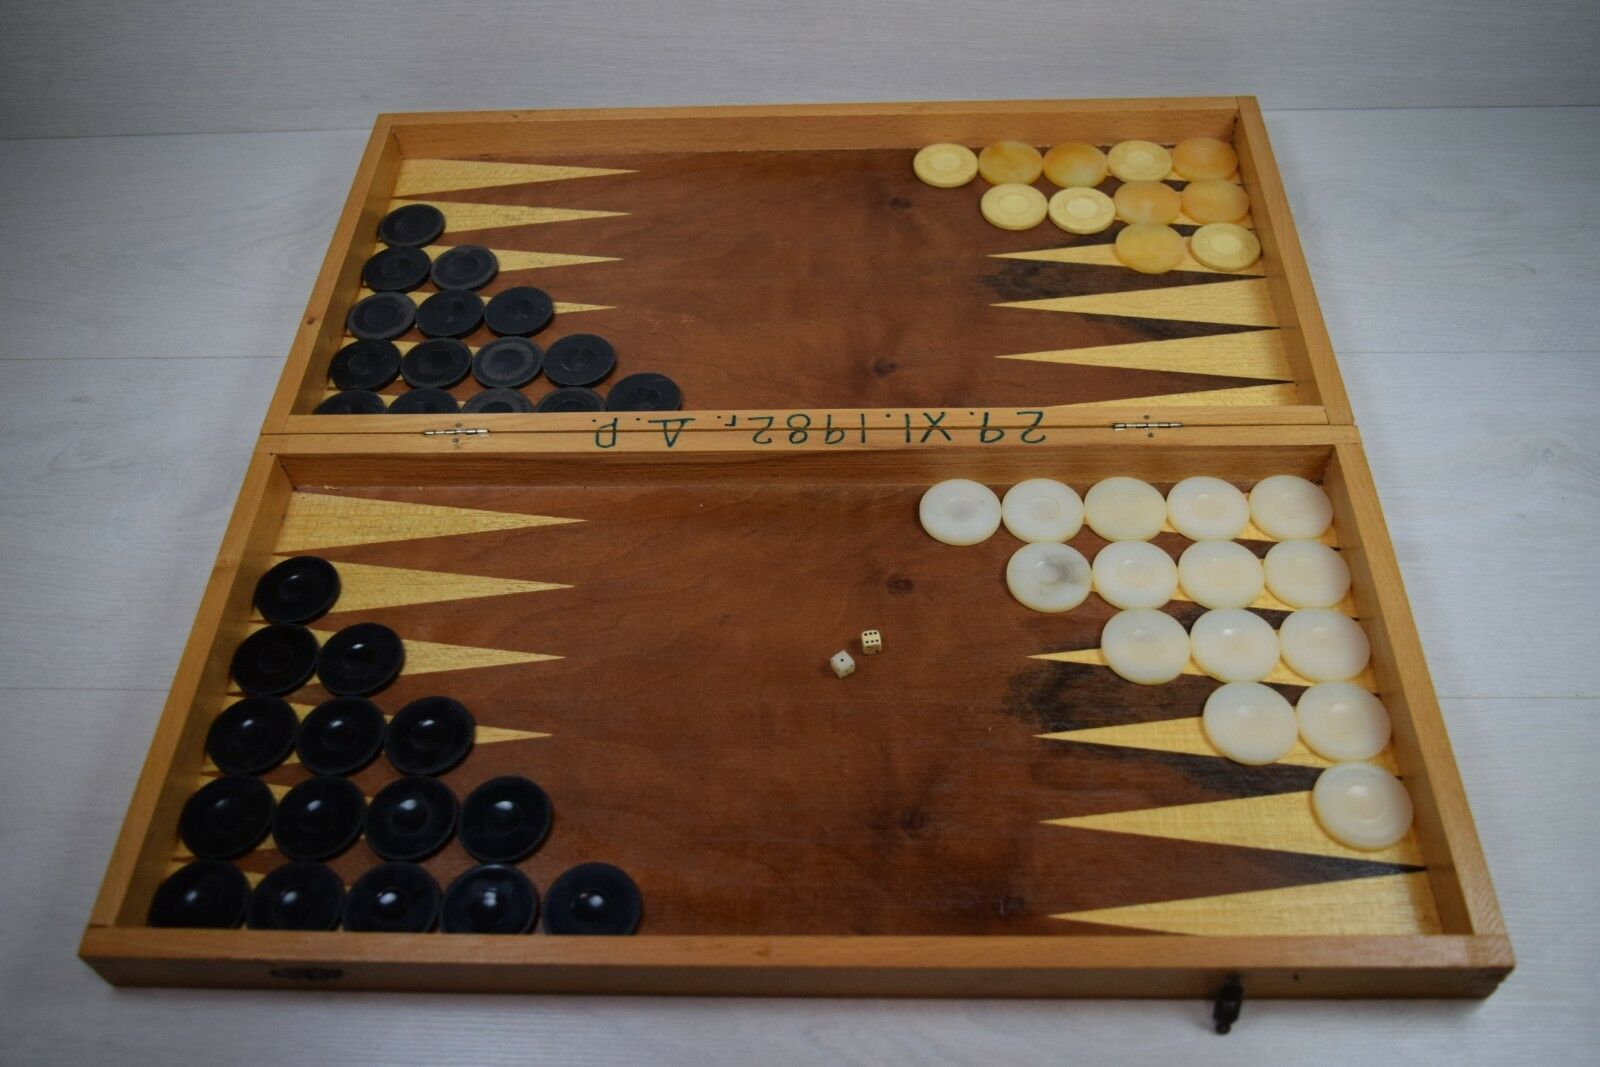 Vintage Collectible Large Wooden Chess & Backgammon Backgammon Backgammon Foldable Table Board Game 46be80